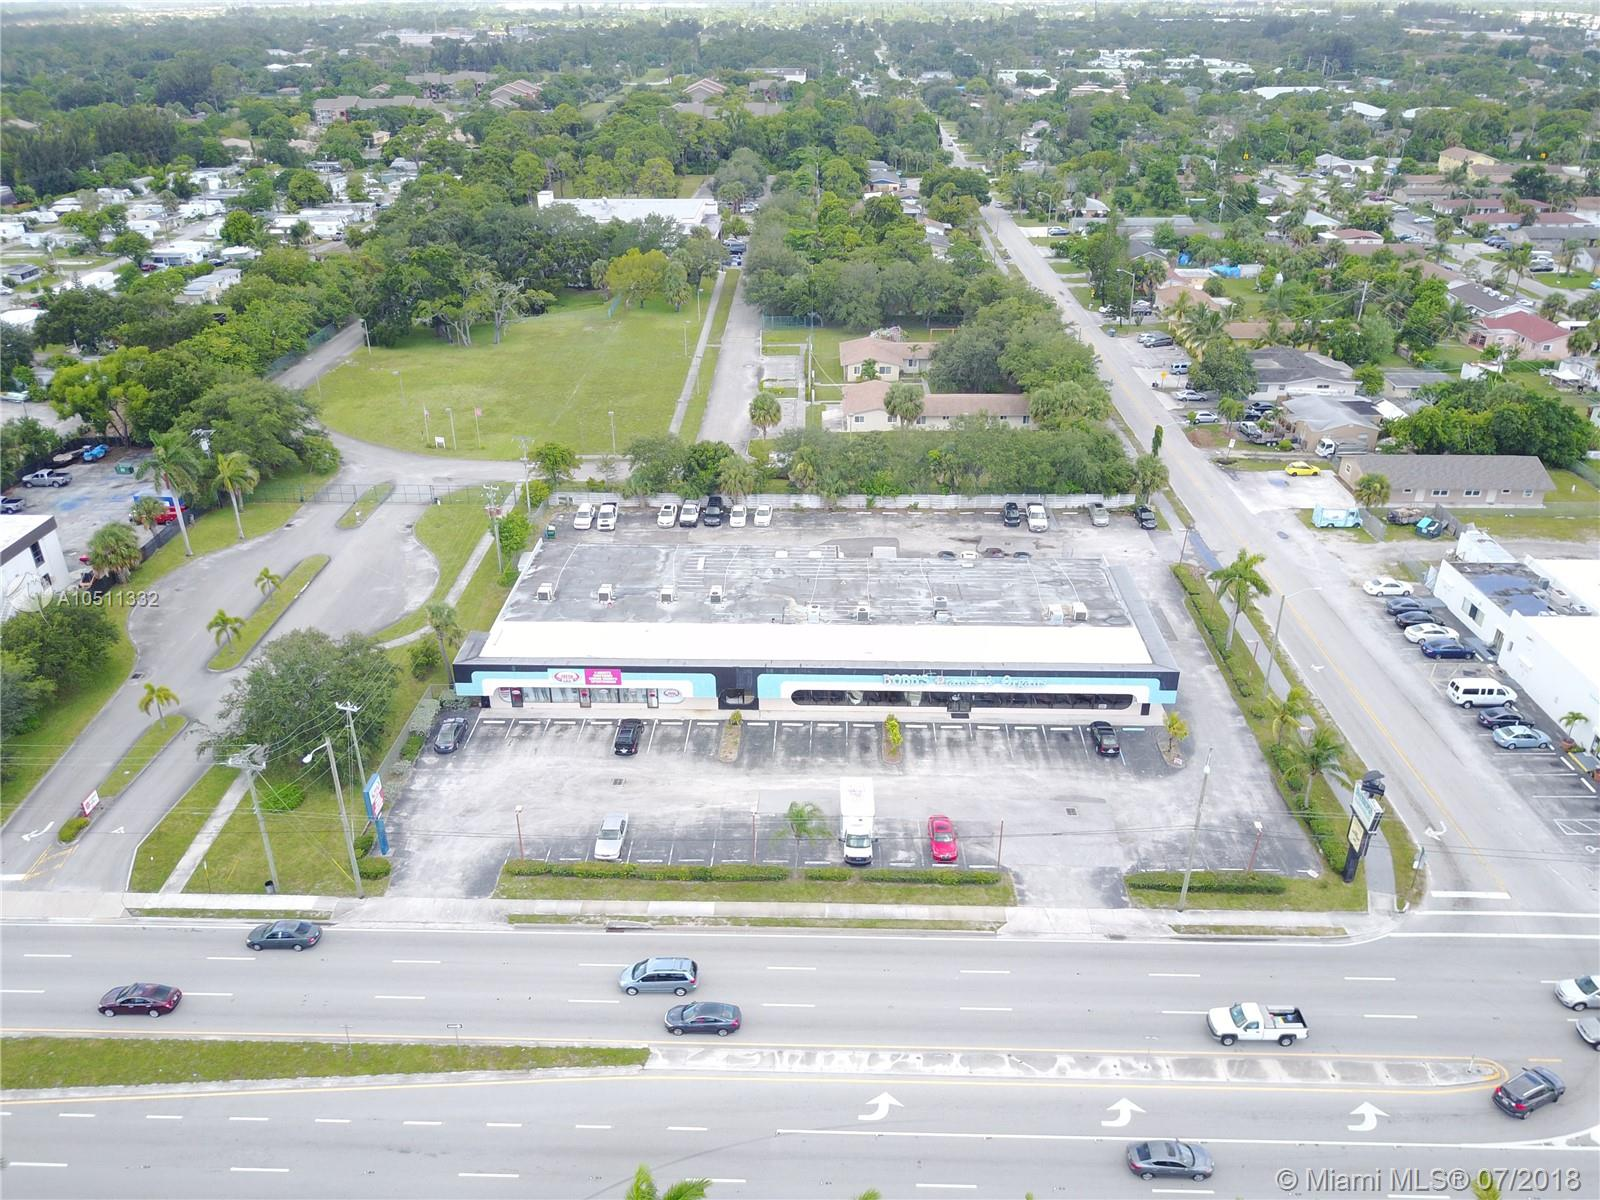 1583 N Military Trl # A, West Palm Beach, Florida 33409, ,Commercial Sale,For Sale,1583 N Military Trl # A,A10511332